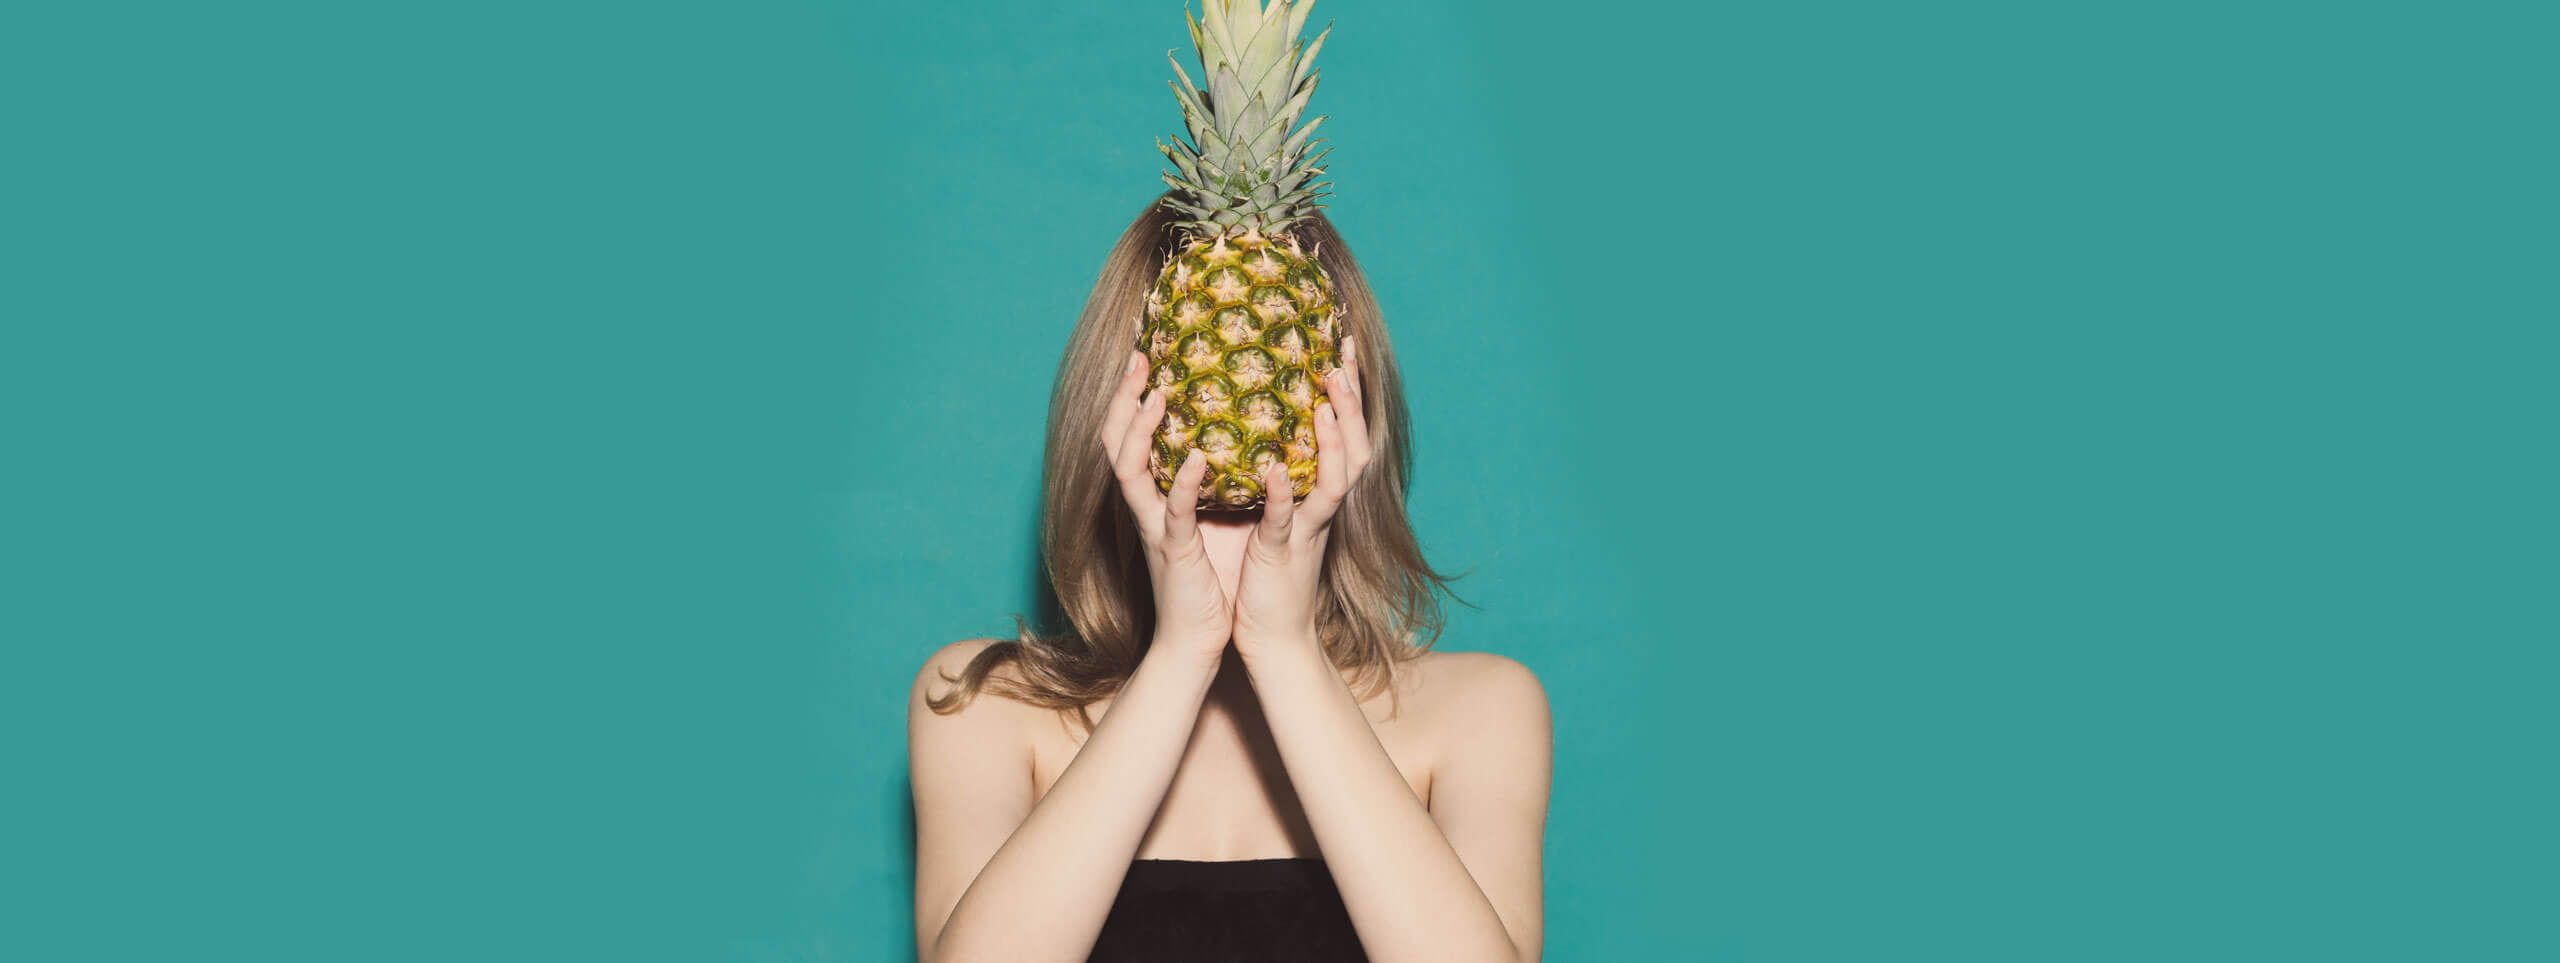 Woman with pineapple and soft tousled hairstyle